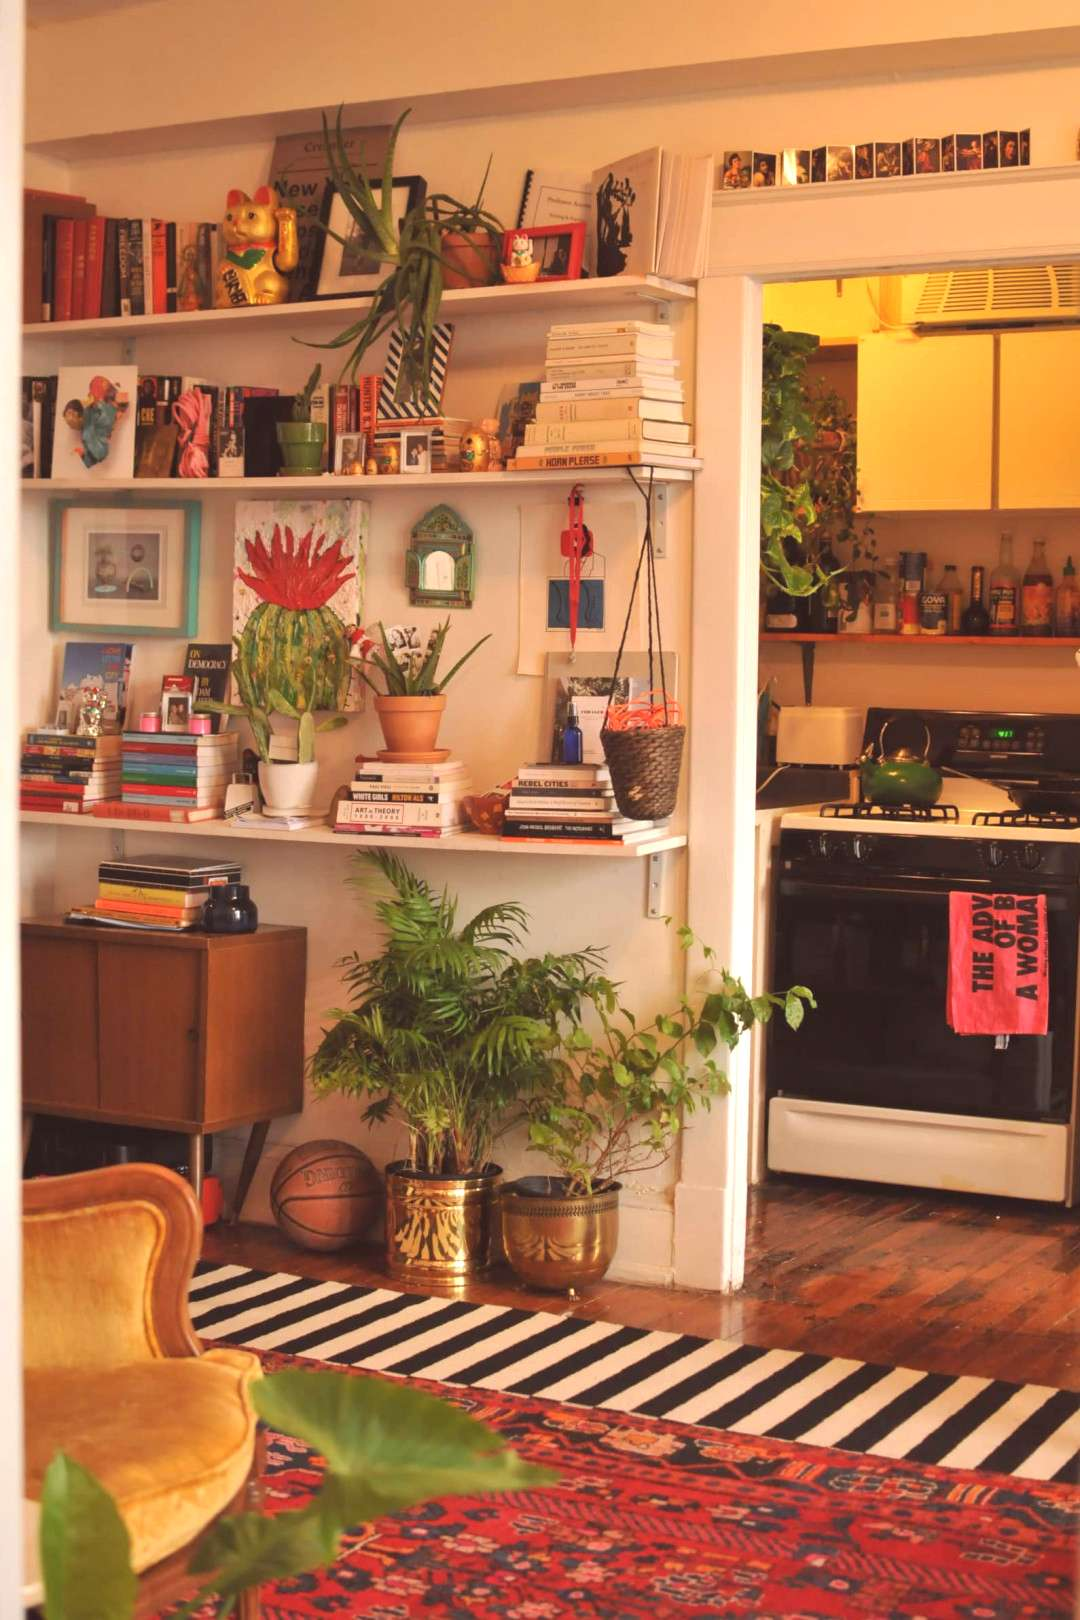 Wall to Wall Art, Plants amp Vintage Goodness in a Quirky Cool DC Apartment | Apartment Therapy